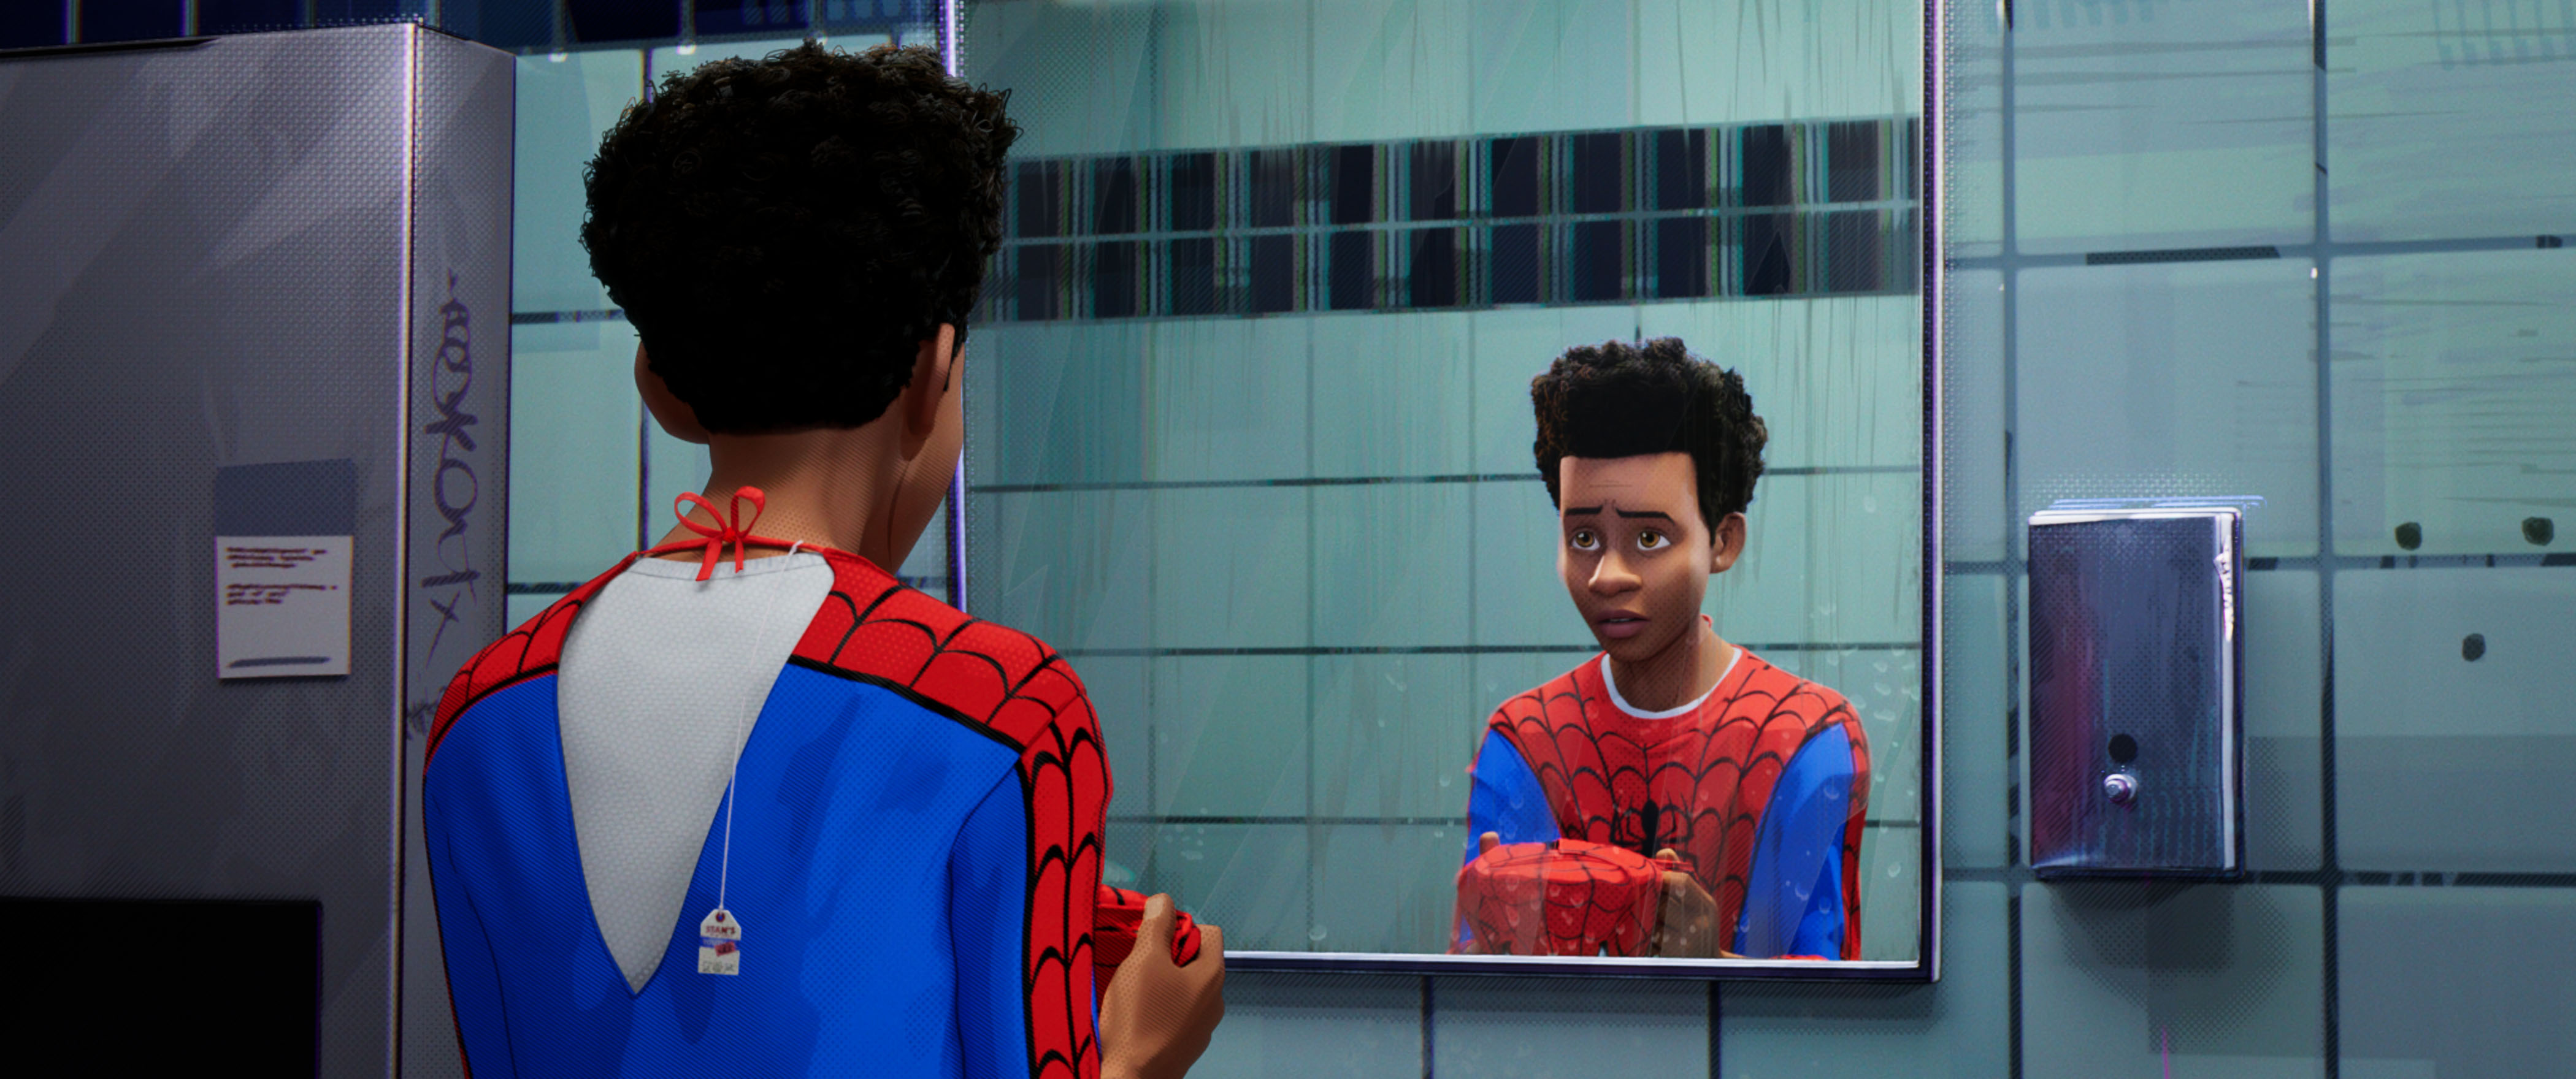 Spider-Man is straight, but 'Into the Spider Verse' is a